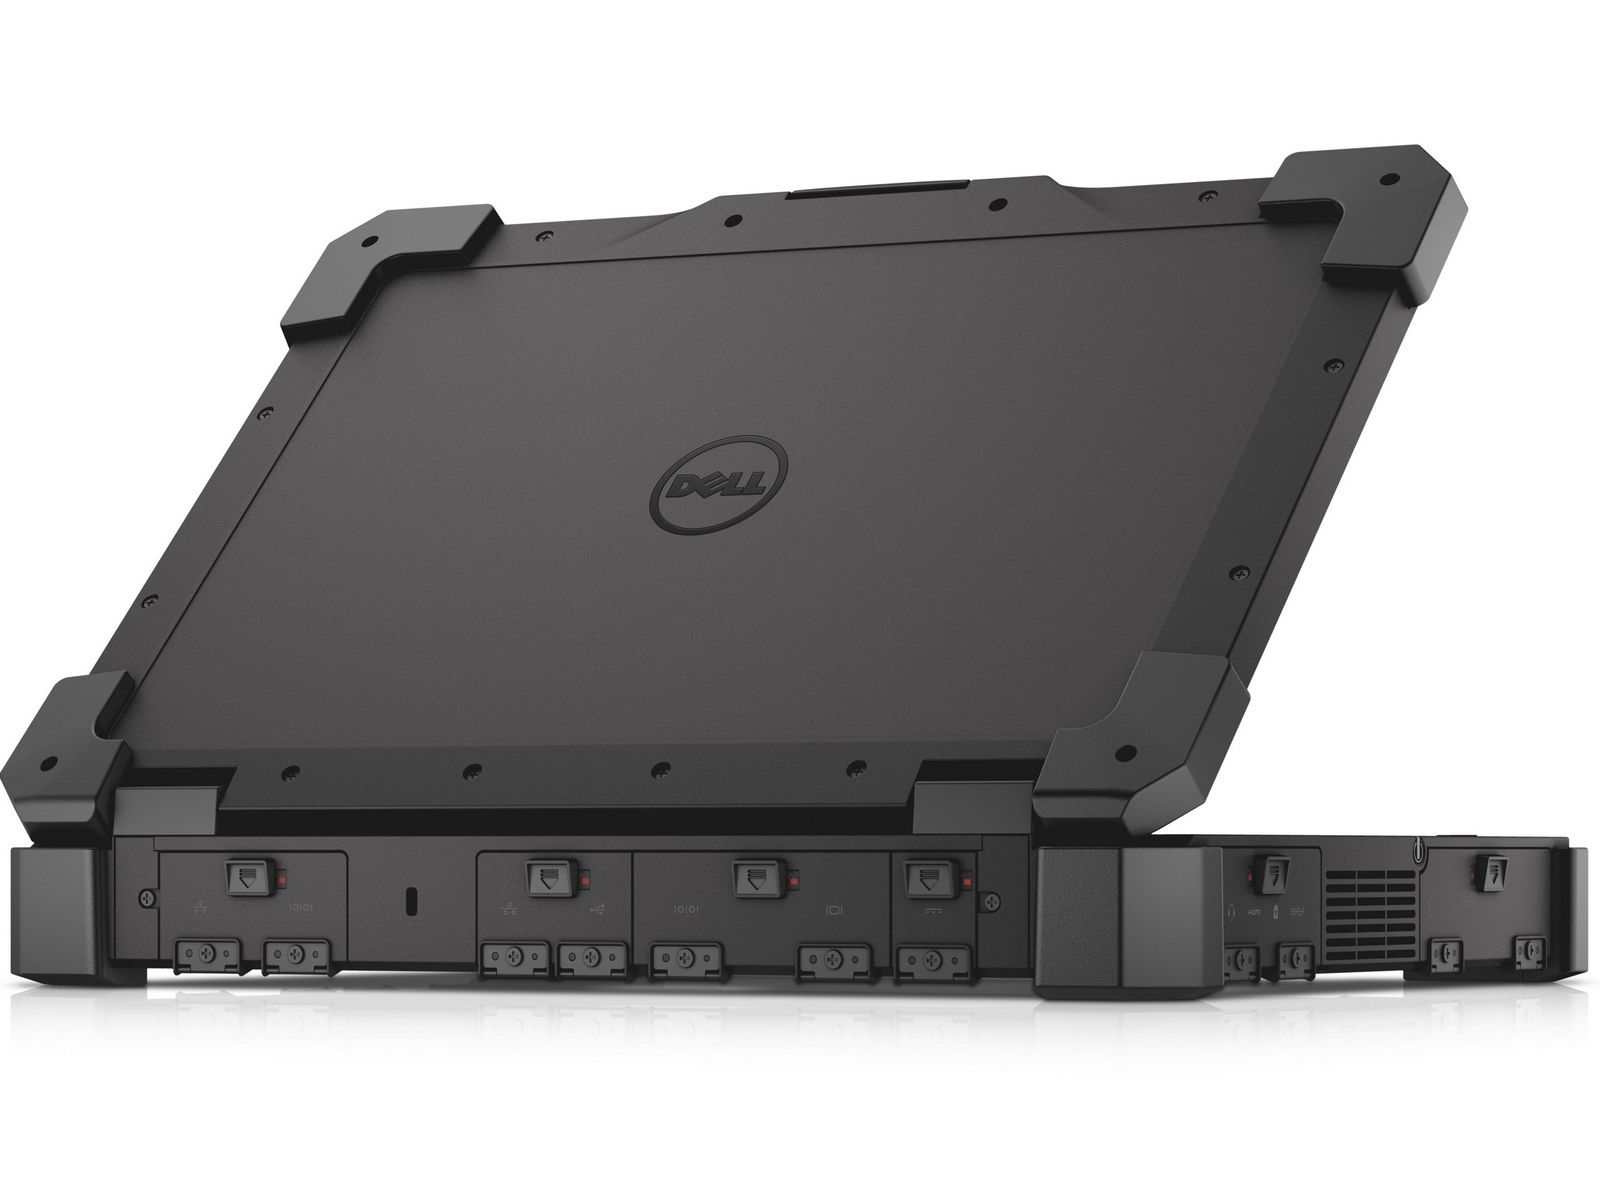 You Can Depend On The Latitude 14 Rugged Extreme Laptop To Knock It Out Of The Park In Terms Of Its Ov Dell Rugged Laptop Rugged Laptop Dell Latitude